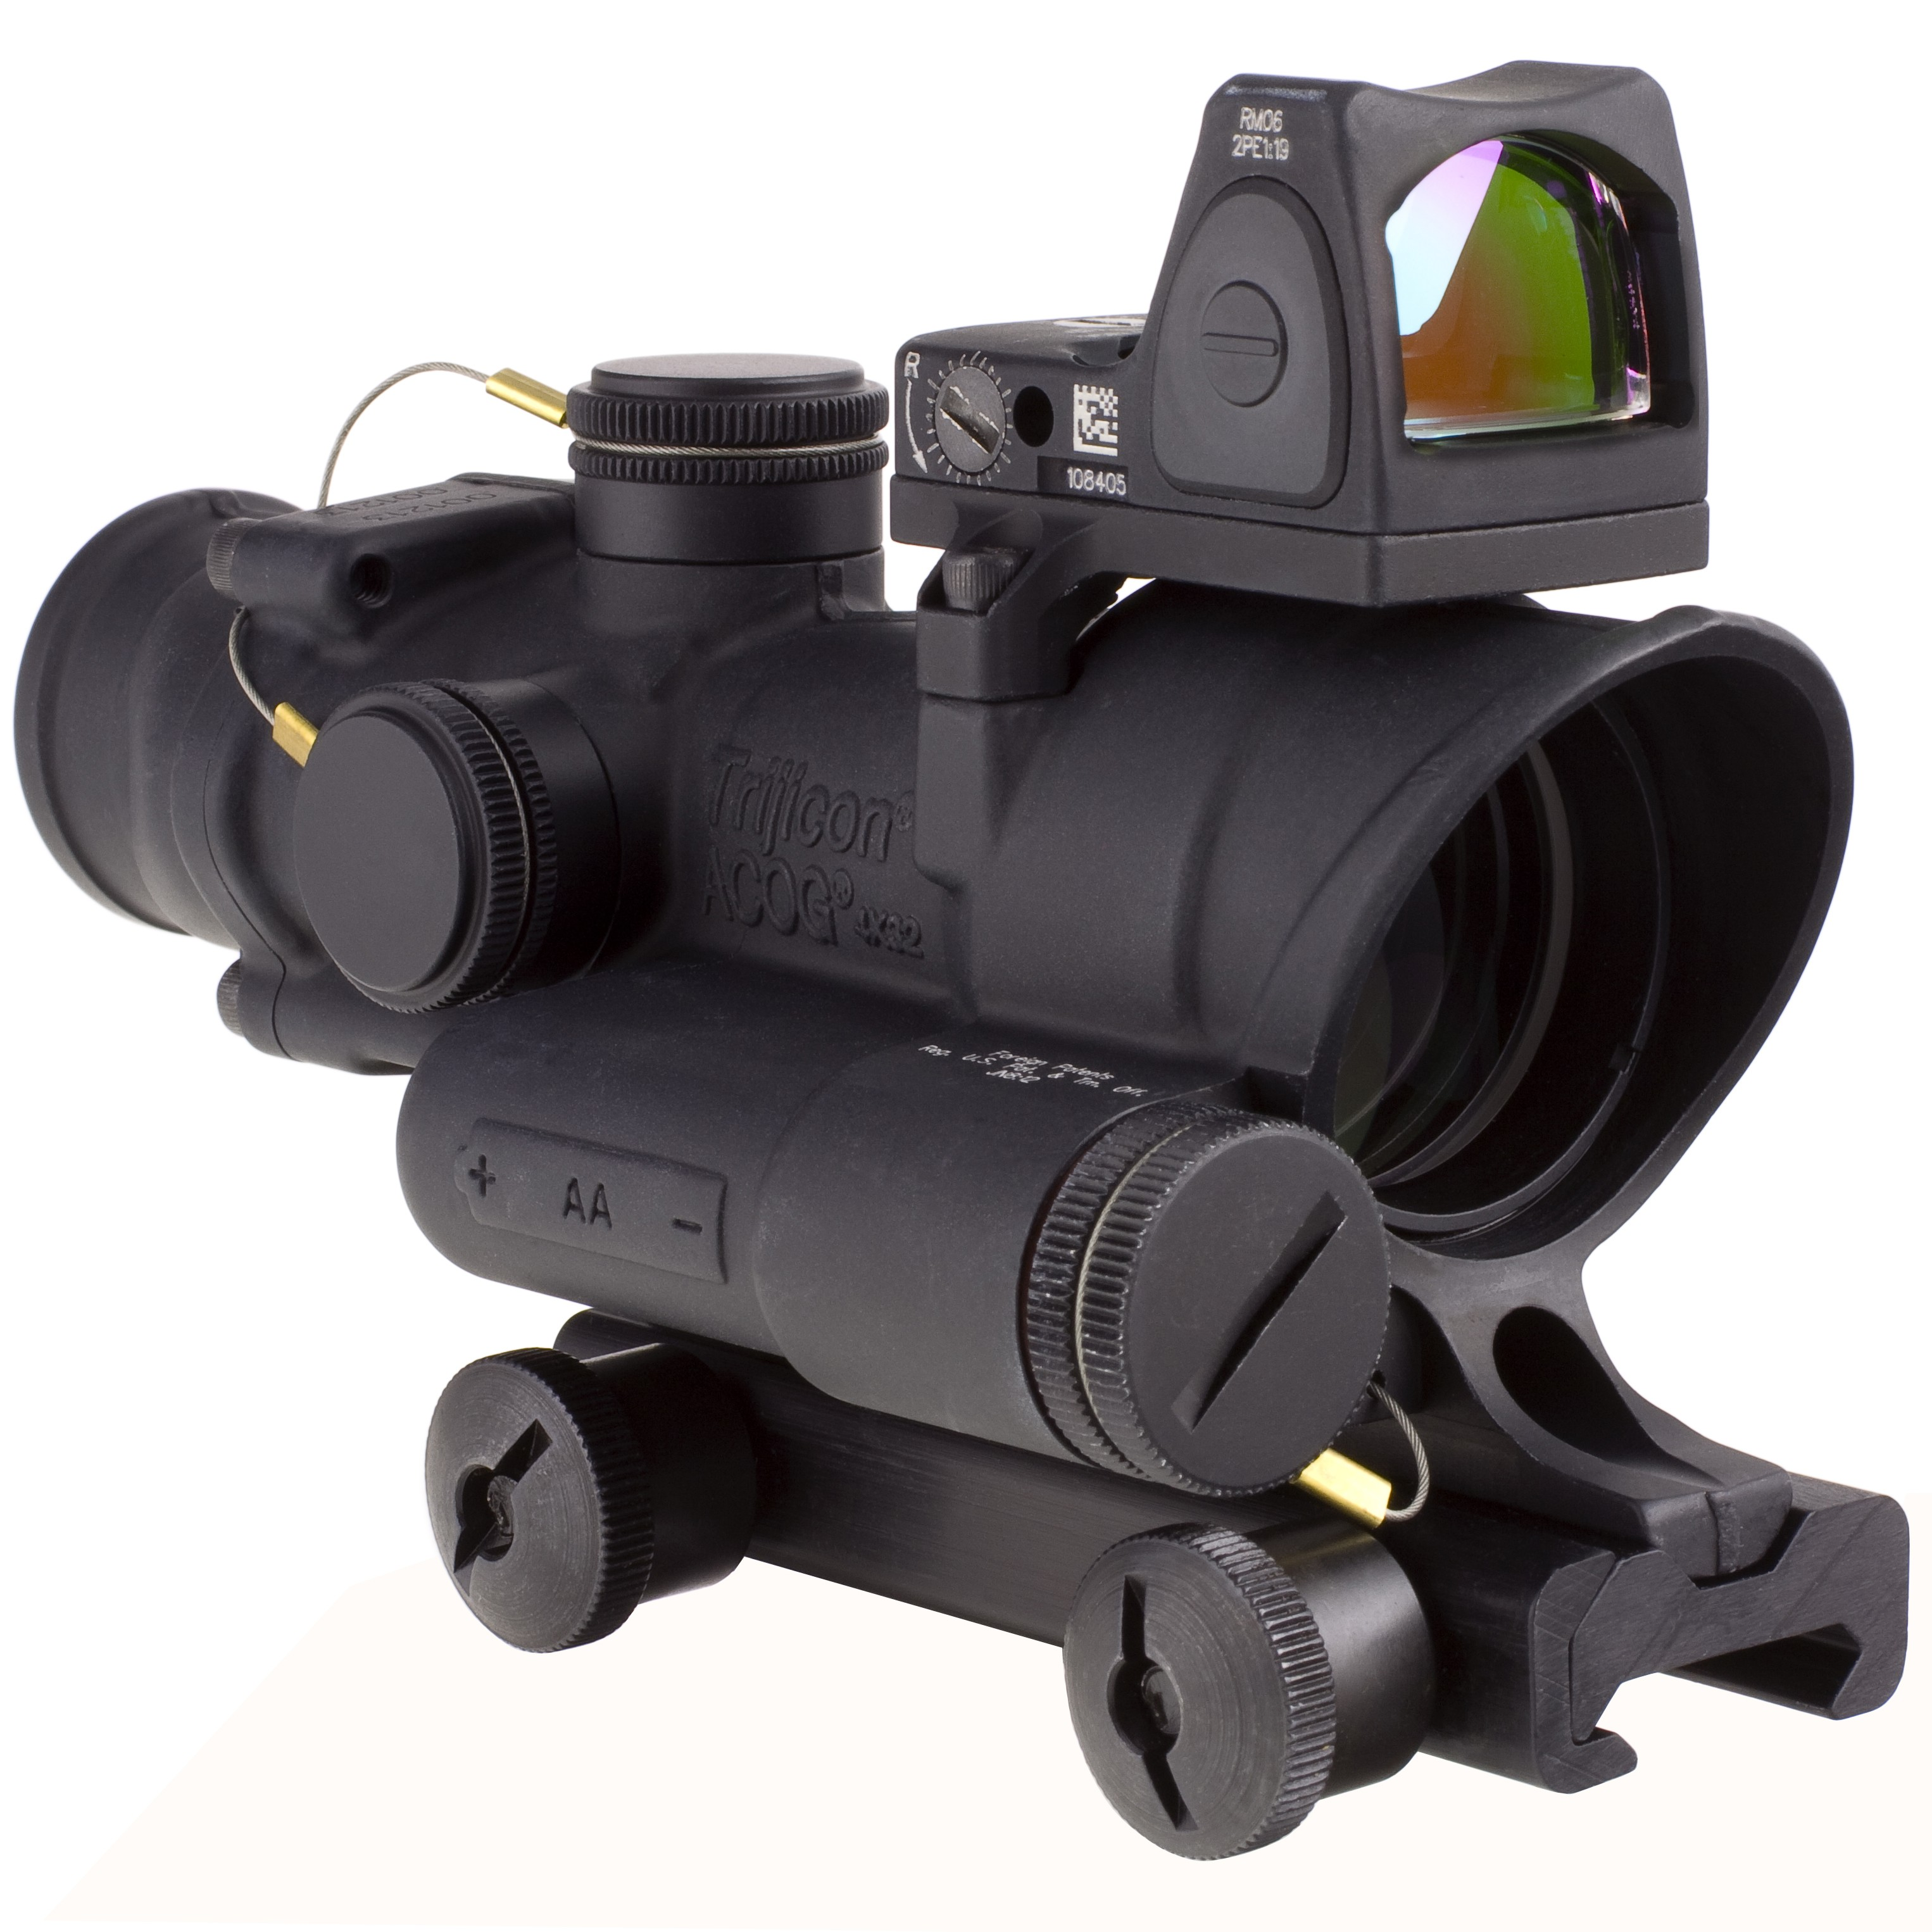 Trijicon 4x32 LED Battery Acog Rifle Scope